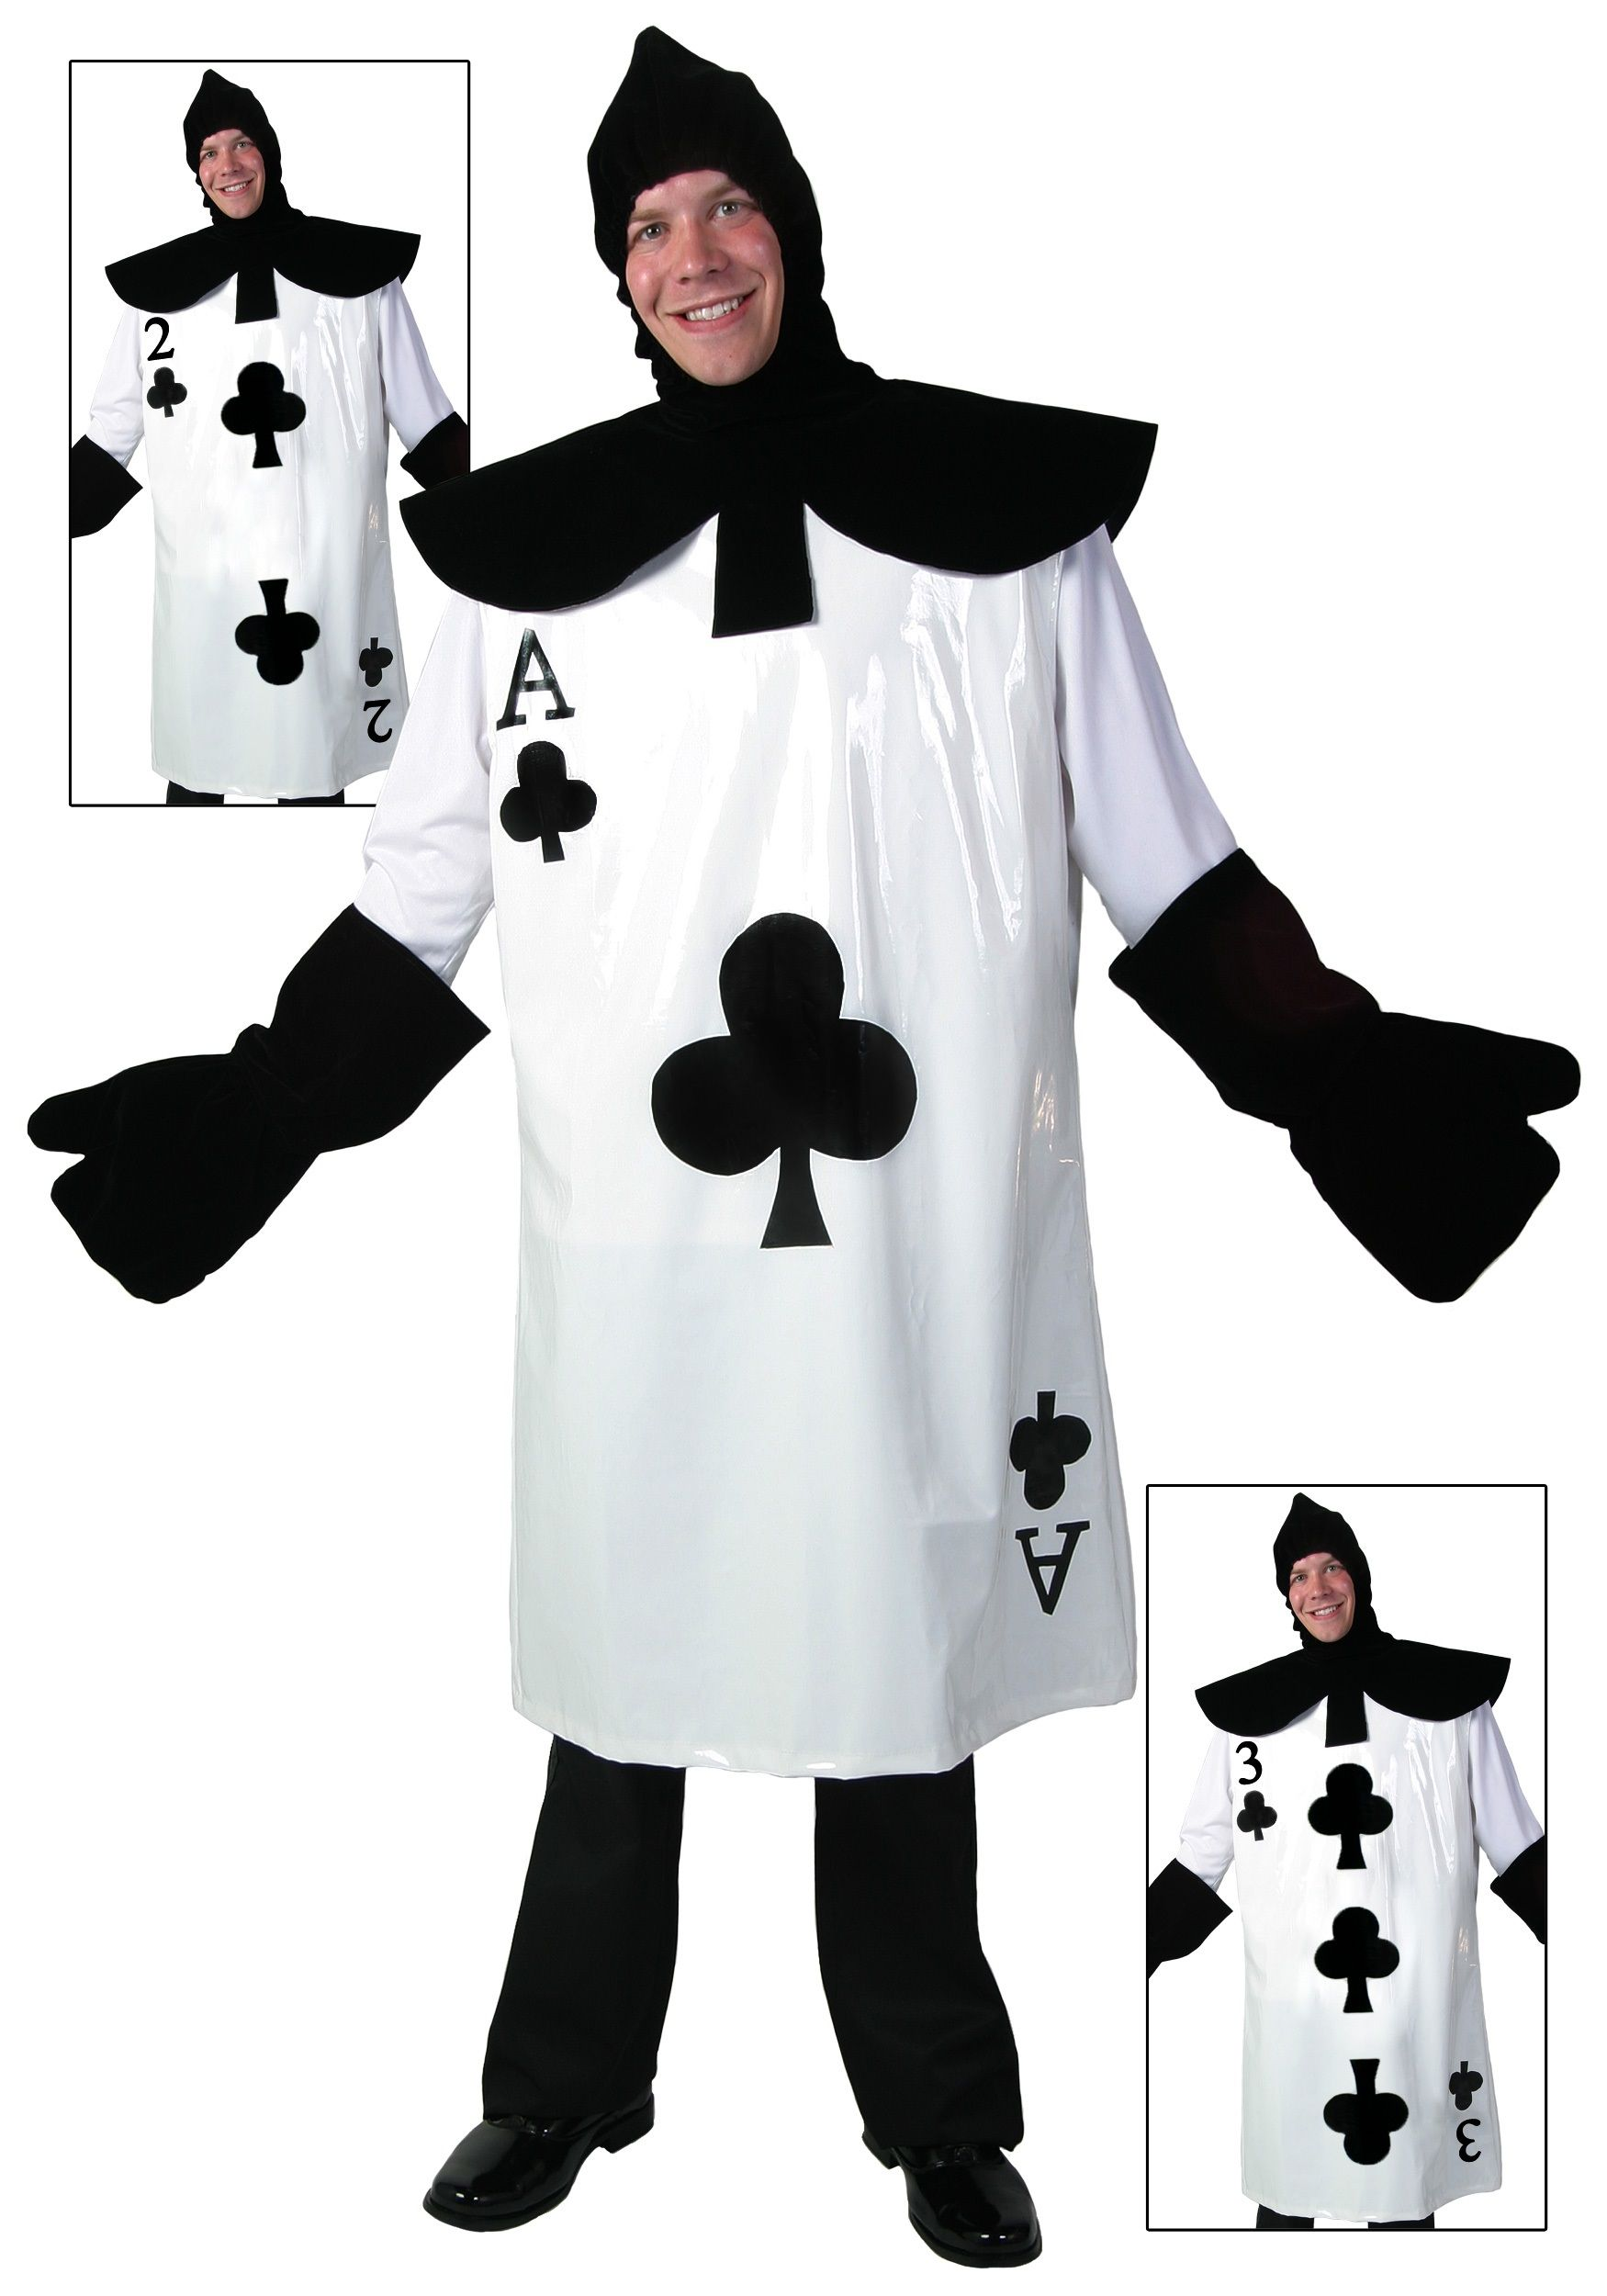 King Of Hearts Costumes Alice In Wonderland Character Costume Ideas Card Costume Playing Card Costume King Of Hearts Costume